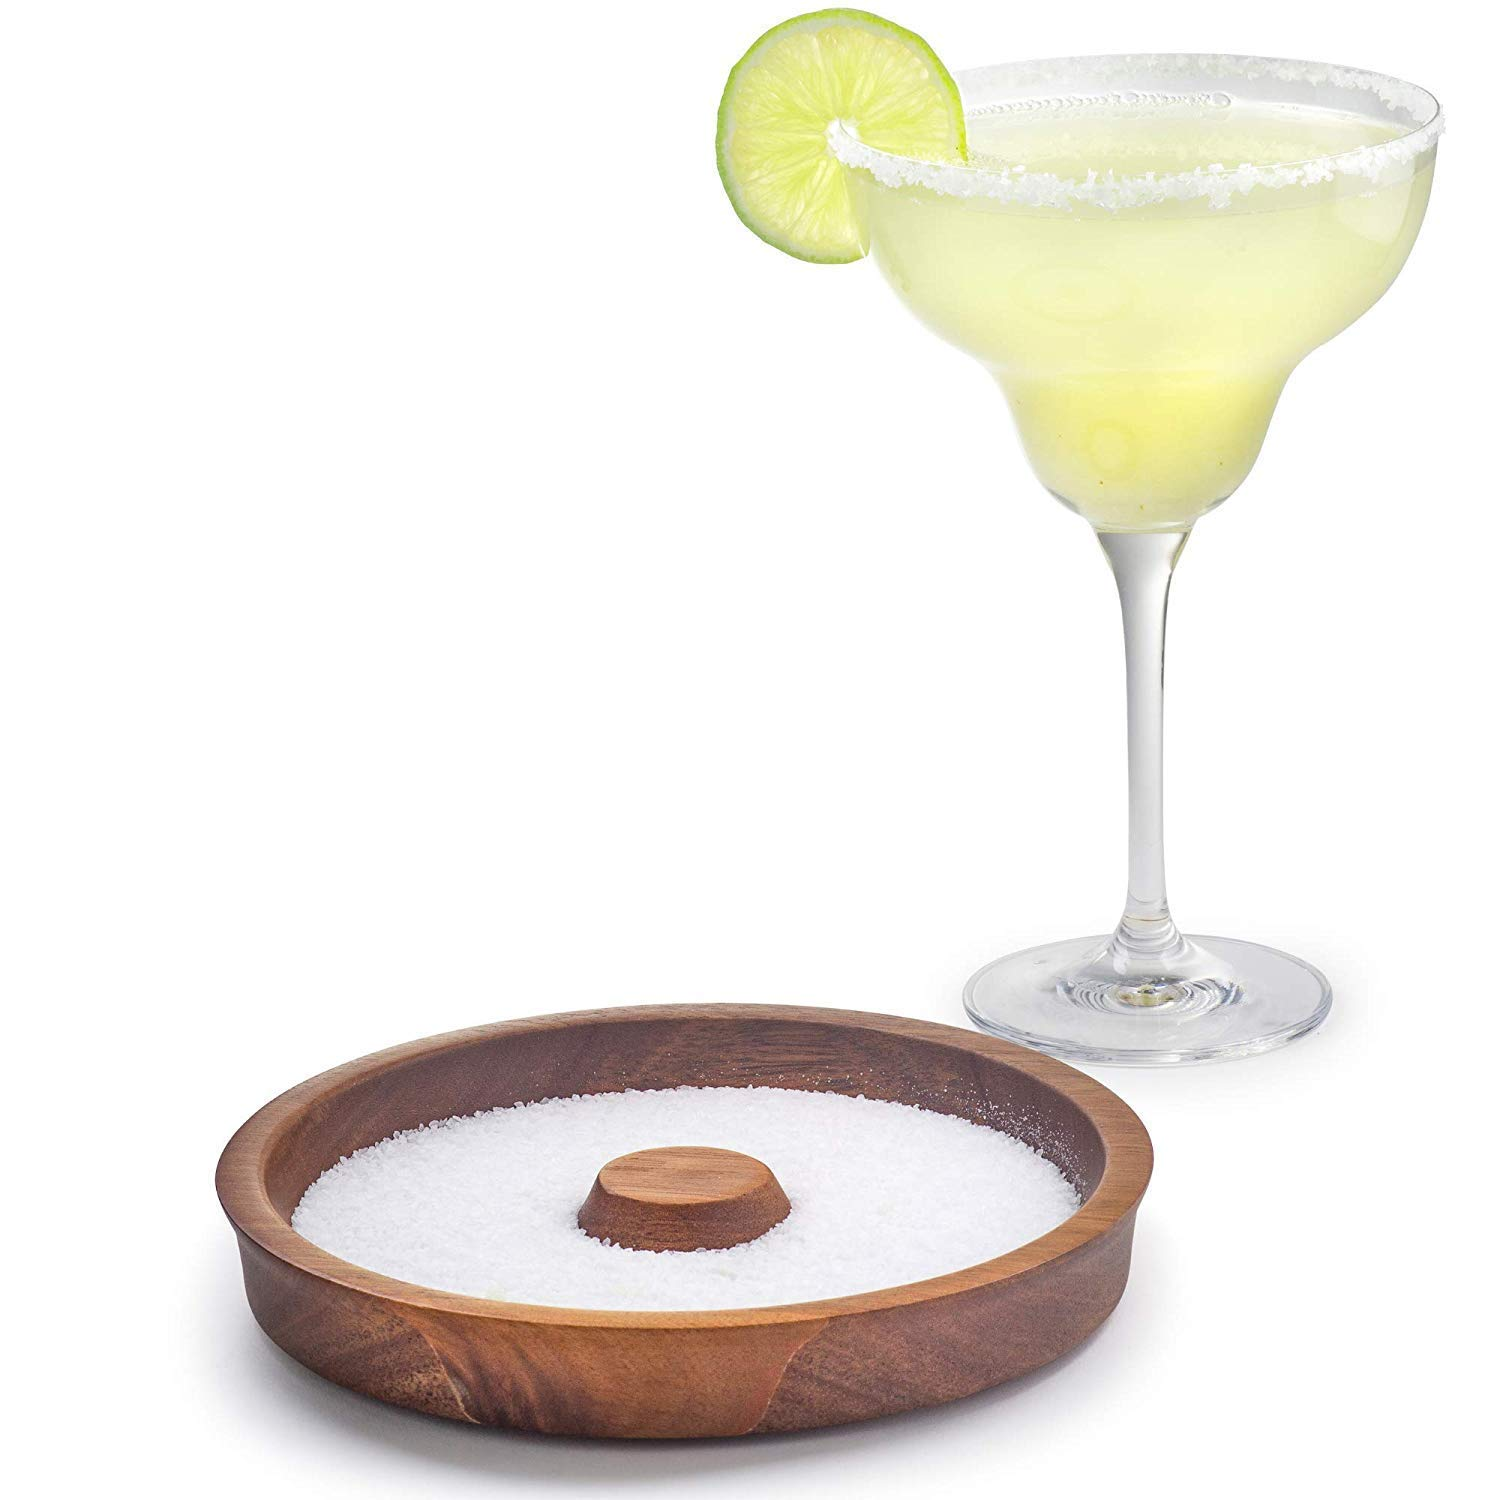 Cork & Mill Margarita Salt Rimmer, Acacia Wood Glass Rimmer, Sugar and Salt Rimmer for Wide Glasses up to 5.5 Inches by Cork & Mill